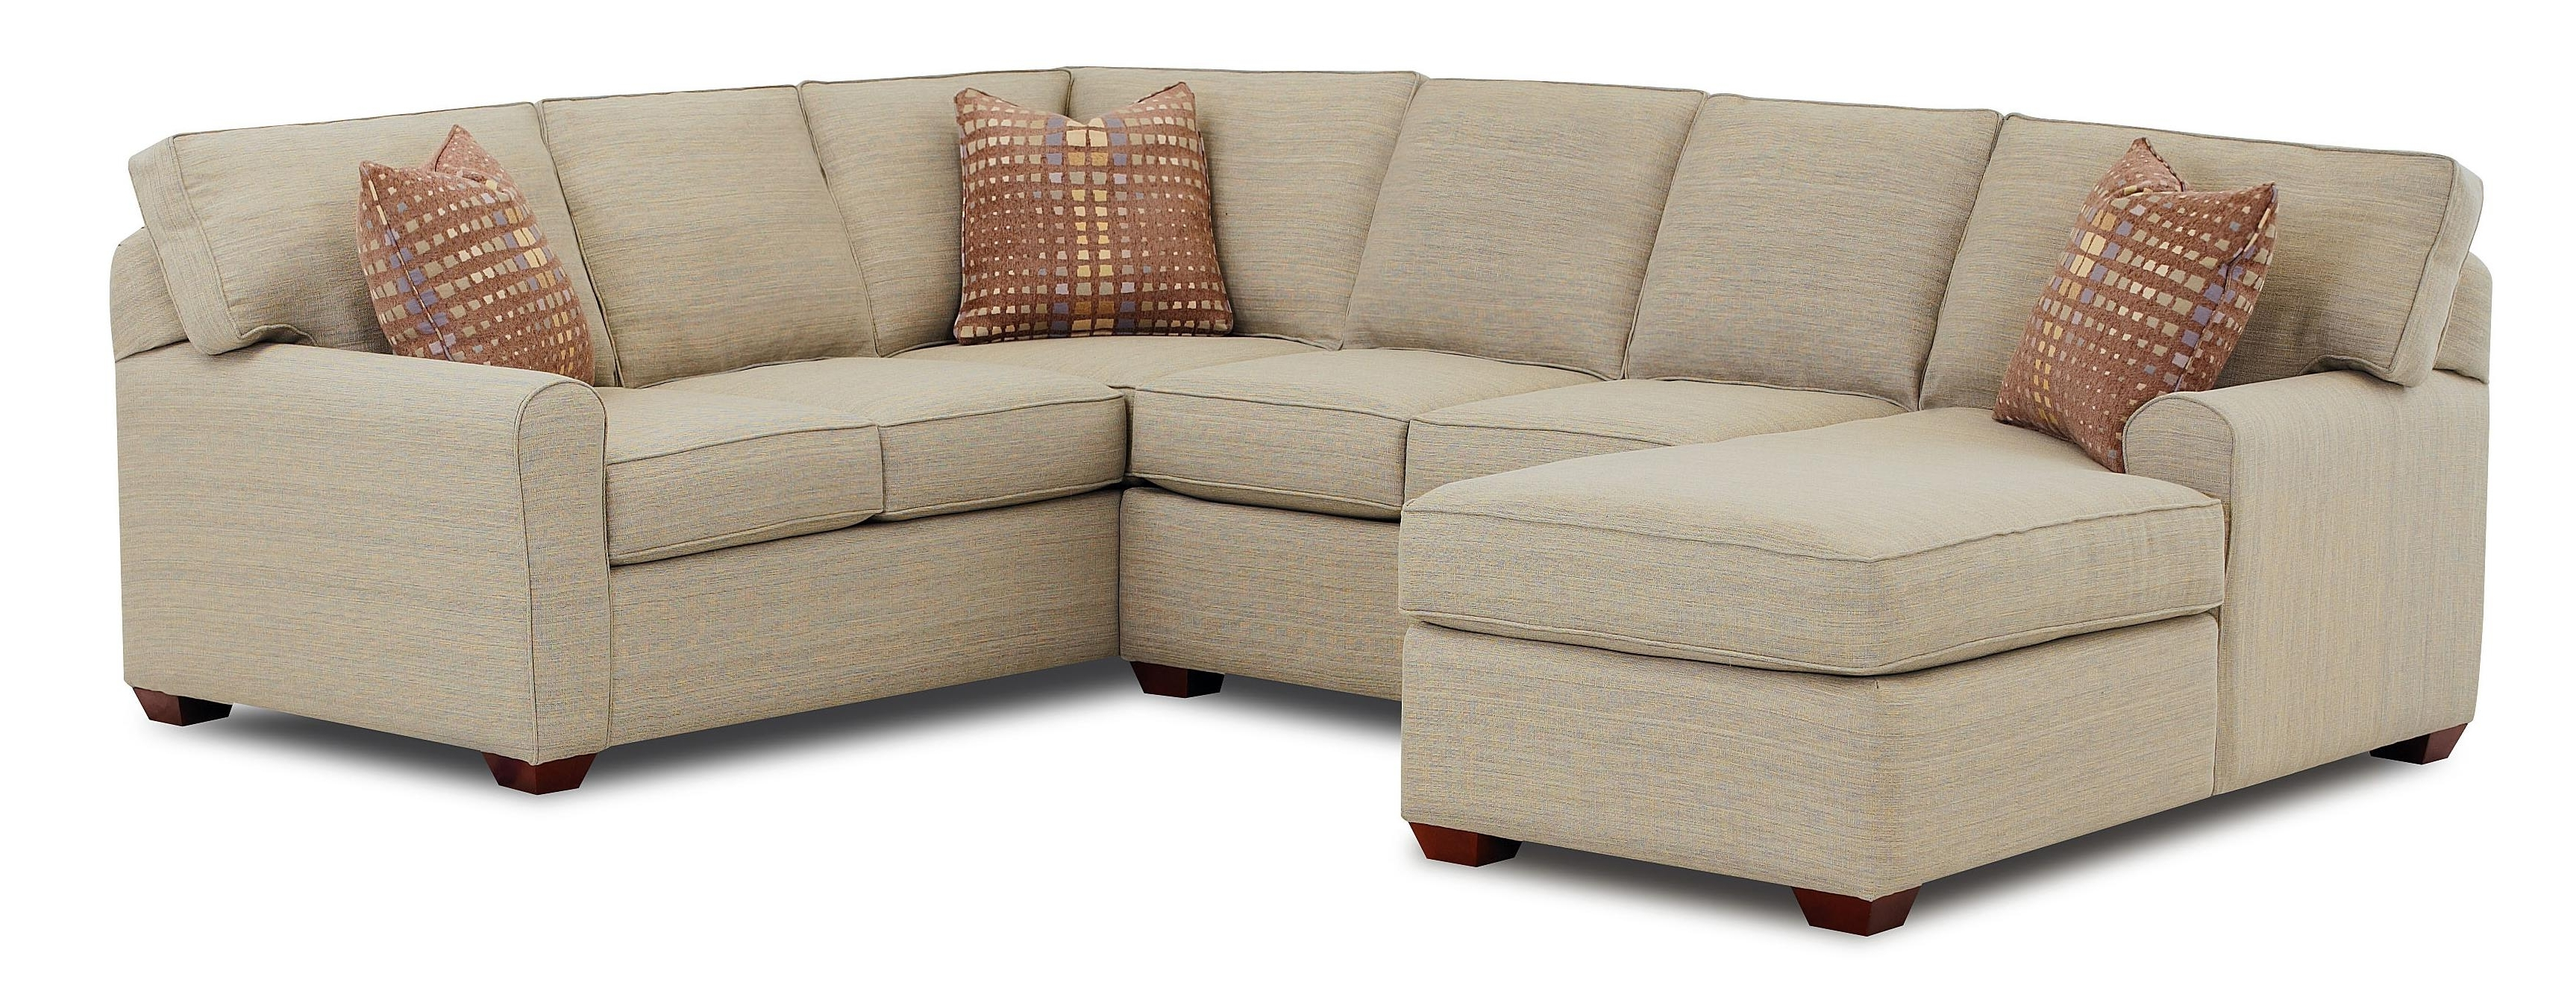 Wolf Pertaining To Most Popular Sectional Sofas With Chaise Lounge And Ottoman (View 13 of 15)